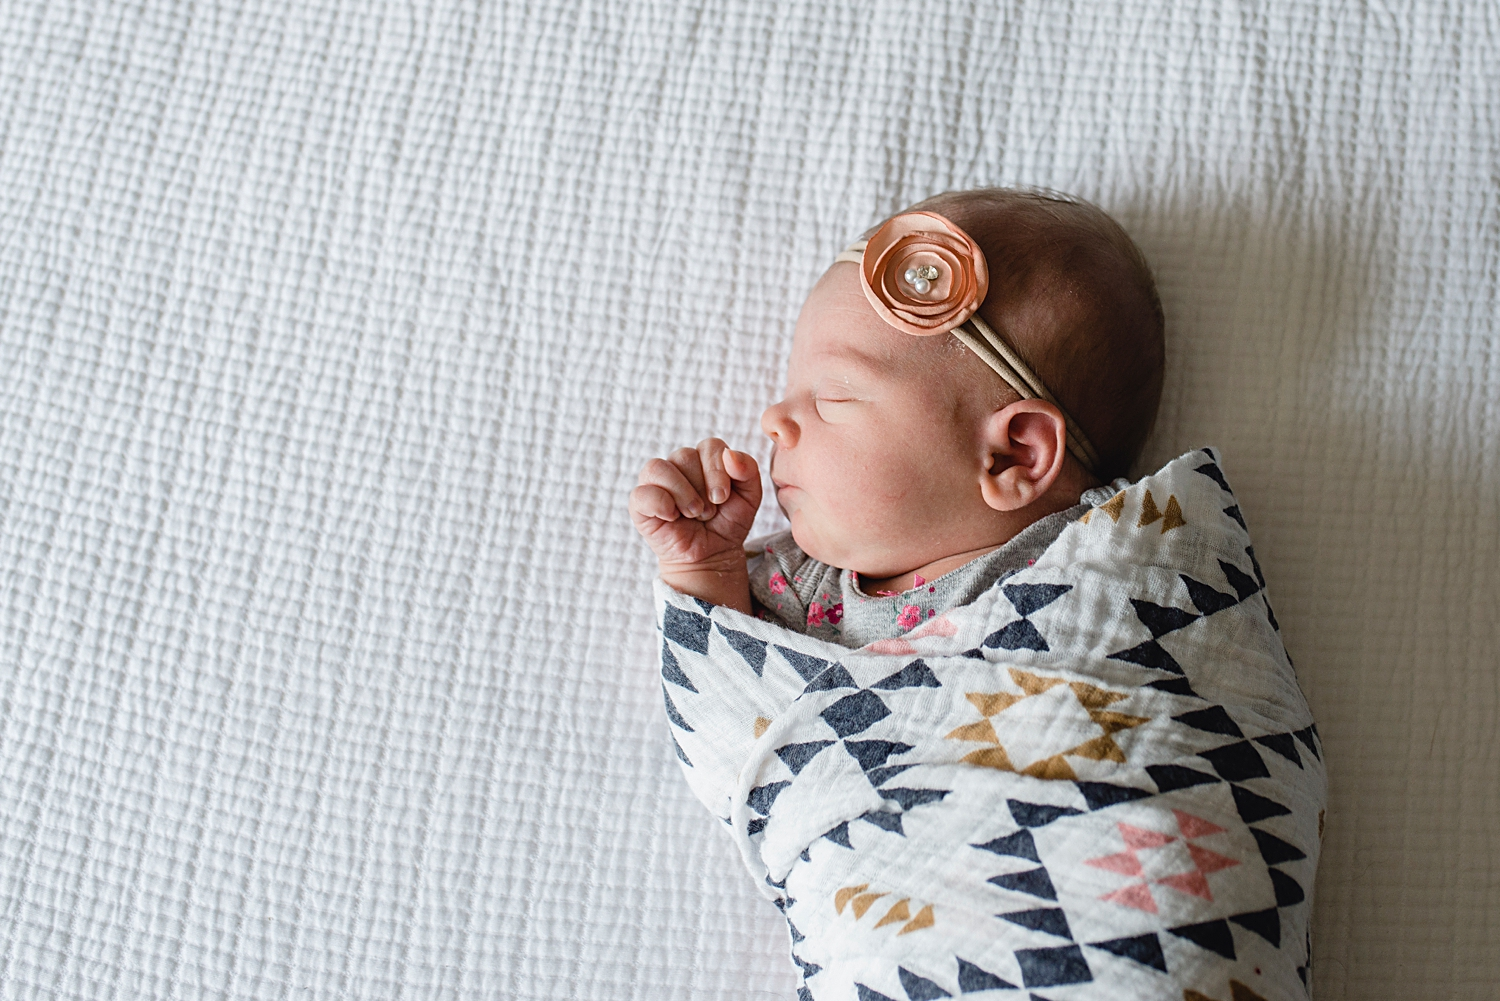 A newborn baby girl in Highlands Ranch, Colorado, is swaddled in an aztec print wrap for her newborn portrait during her first photo shoot.